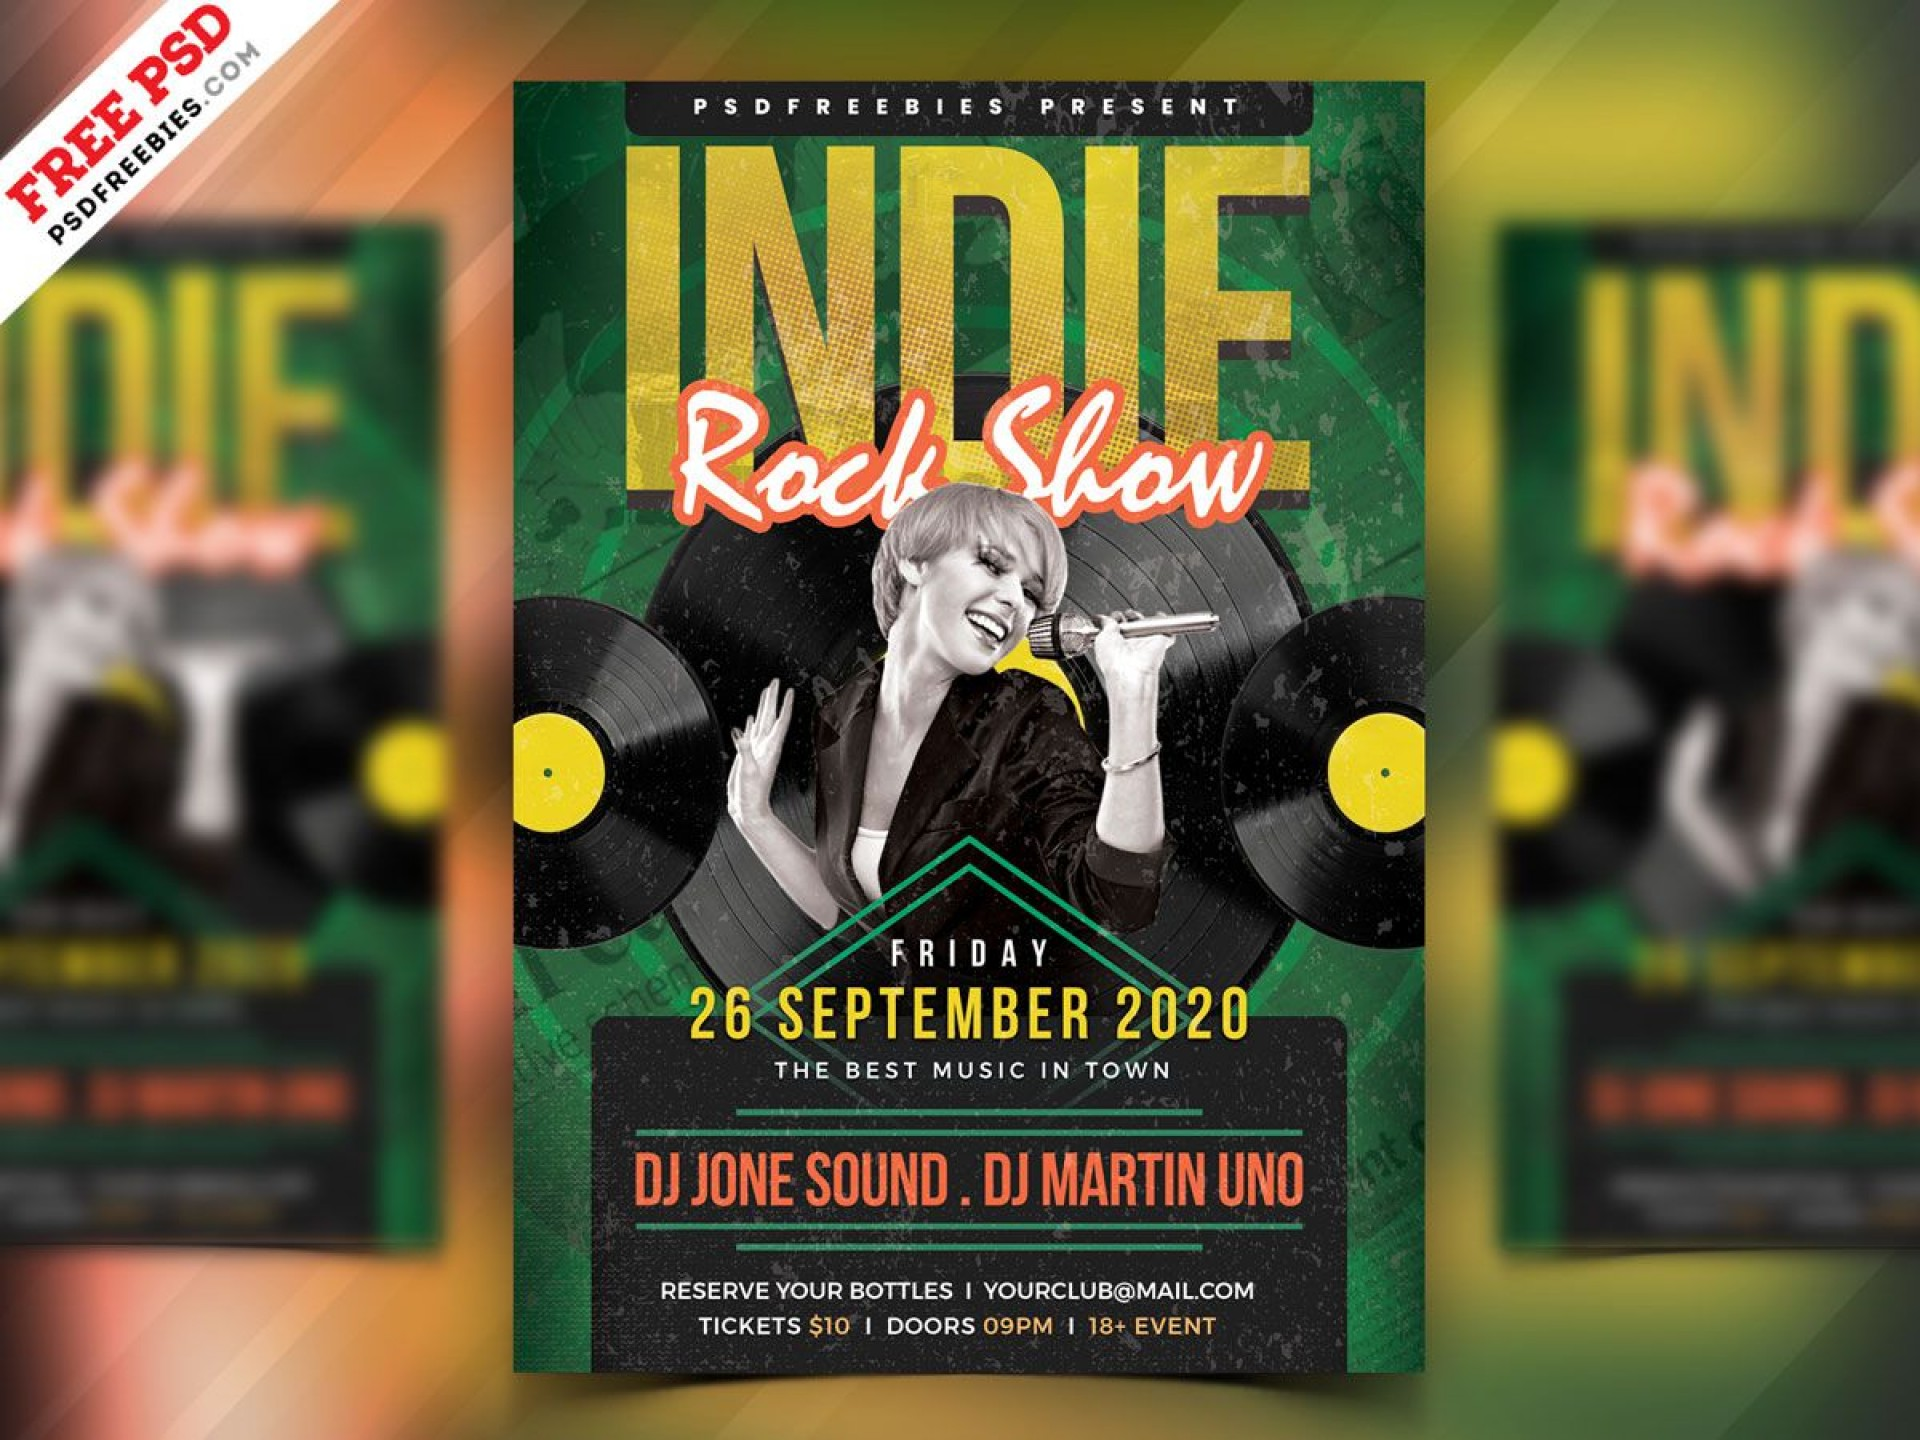 004 Incredible Free Rock Concert Poster Template Psd Inspiration 1920